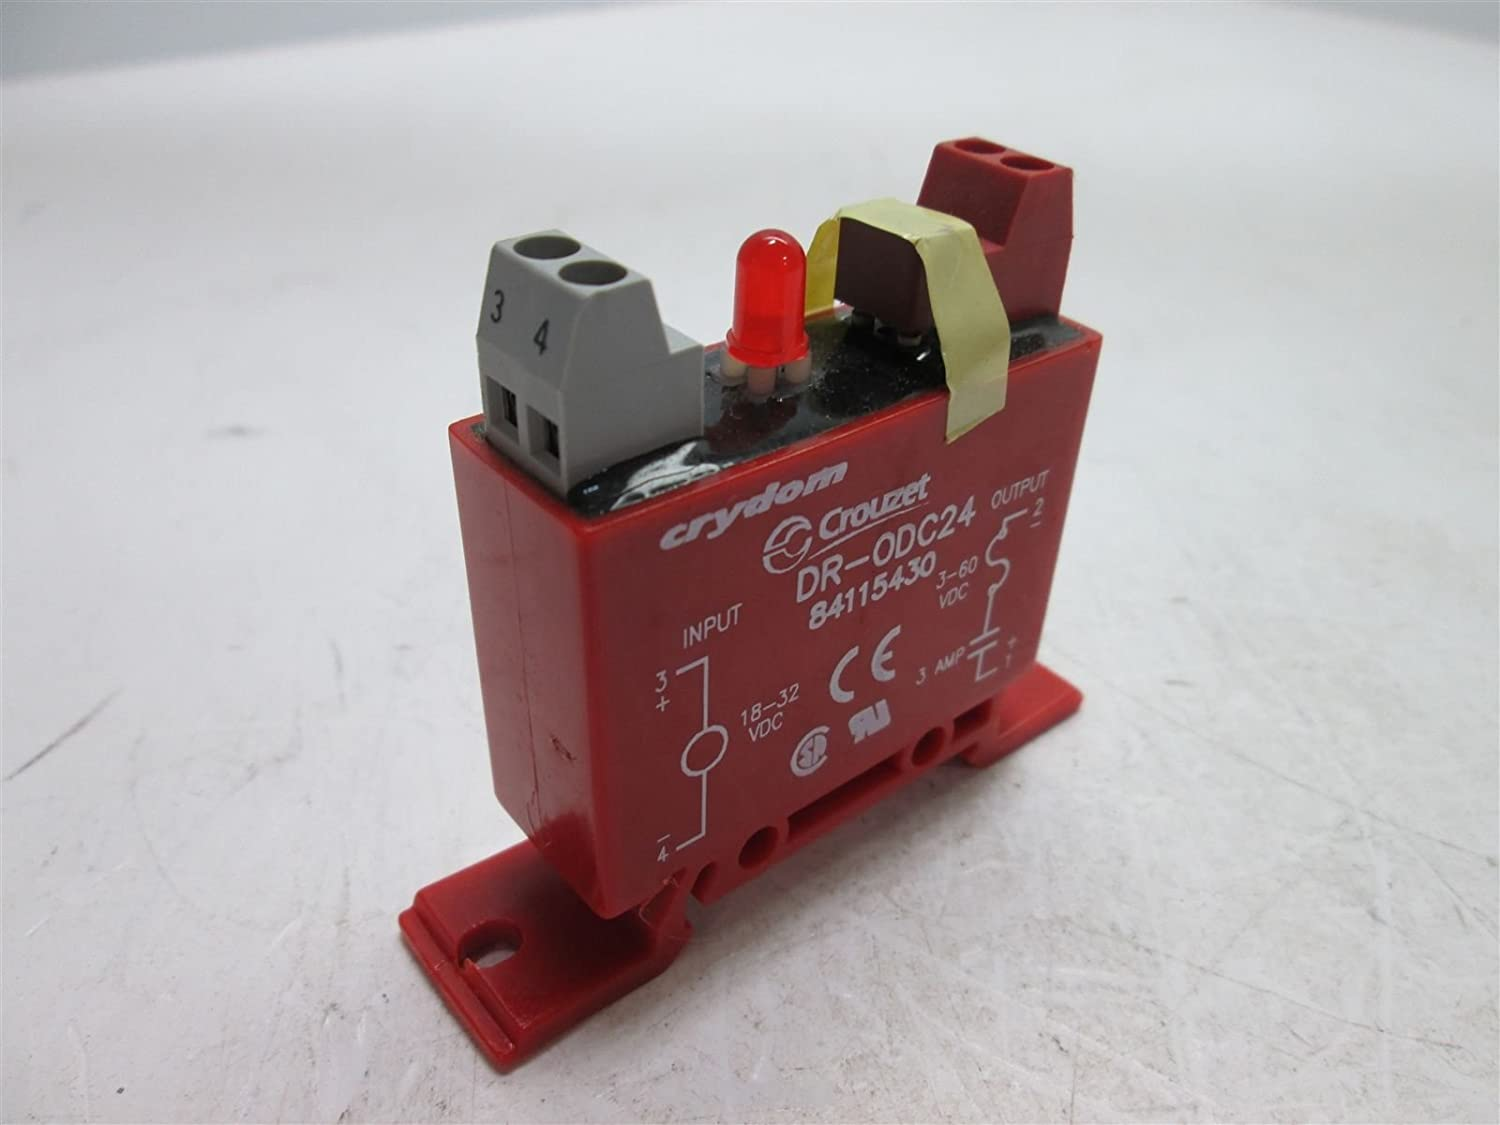 CRYDOM DR-ODC24 DR Series 60 V 3 A Color DC Red O Topics on Cheap SALE Start TV DIN Rail Mount